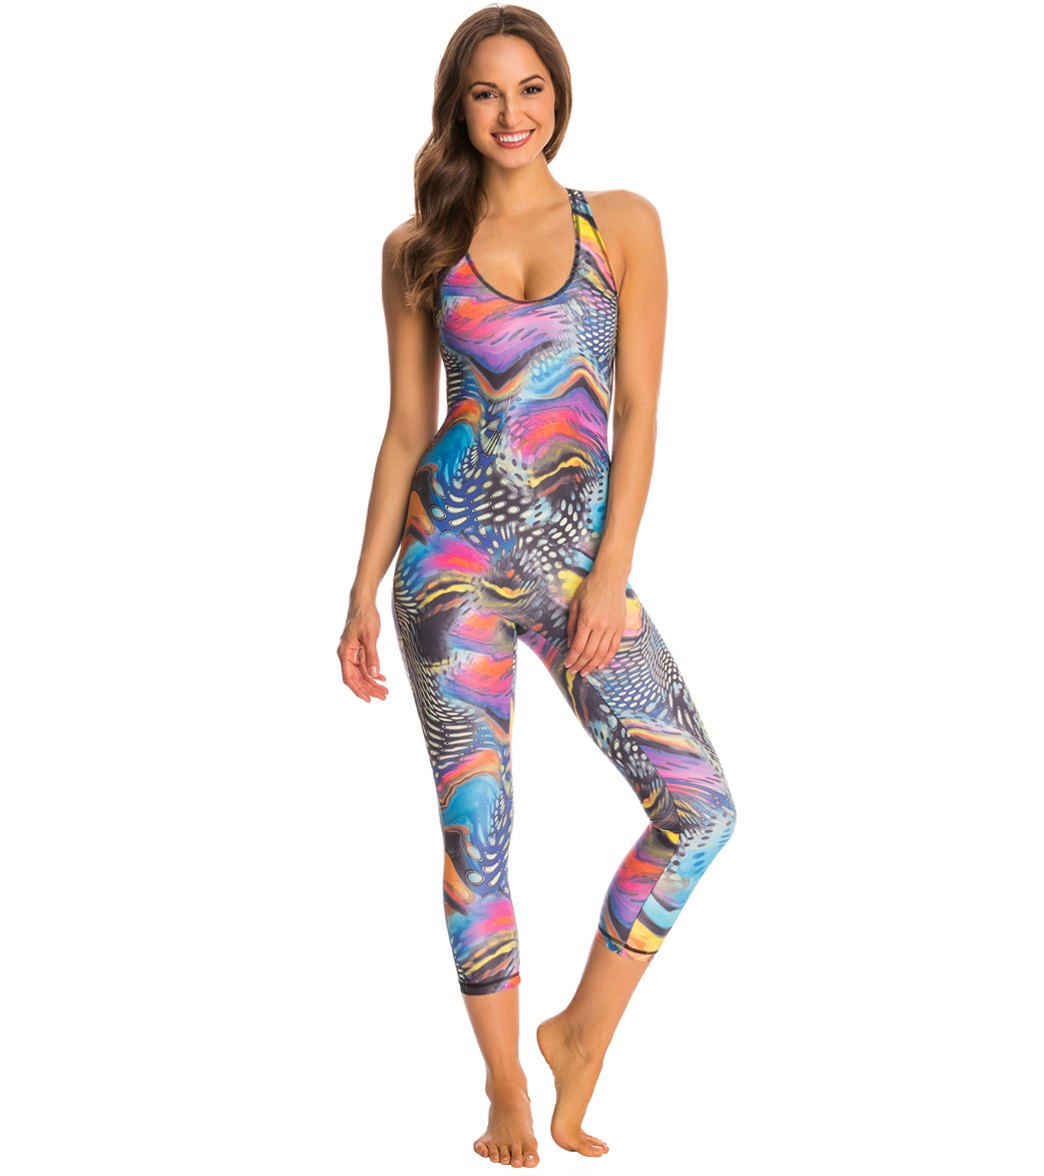 5b955df642a3 SlipIns Synergy Aquarious One Piece Unitard at SwimOutlet.com - Free  Shipping